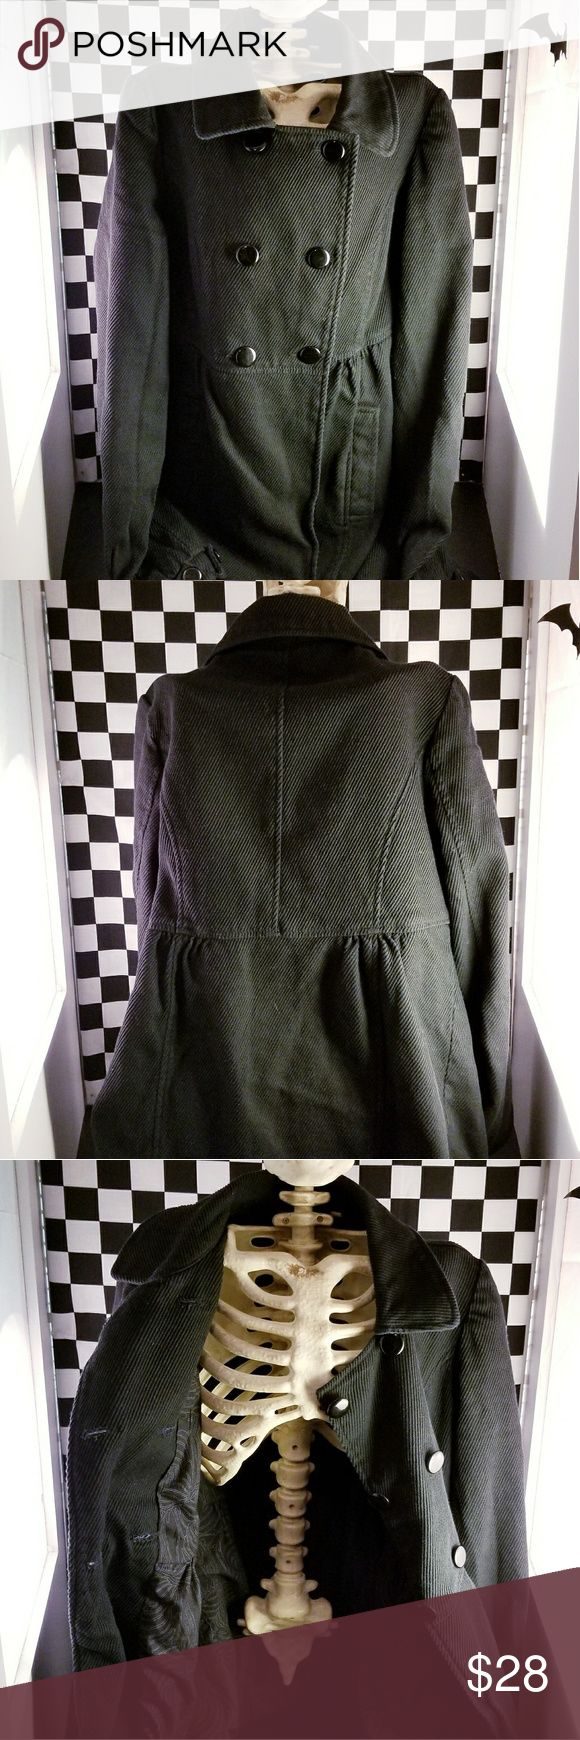 #wednesdayvibes Black Pea Coat This classy coat has an Addams' feel! Throw it on & hit the cemetery for a game of Wake the Dead! ☠☠☠  In great condition. No holes or stains 🖤 Tulle Jackets & Coats Pea Coats